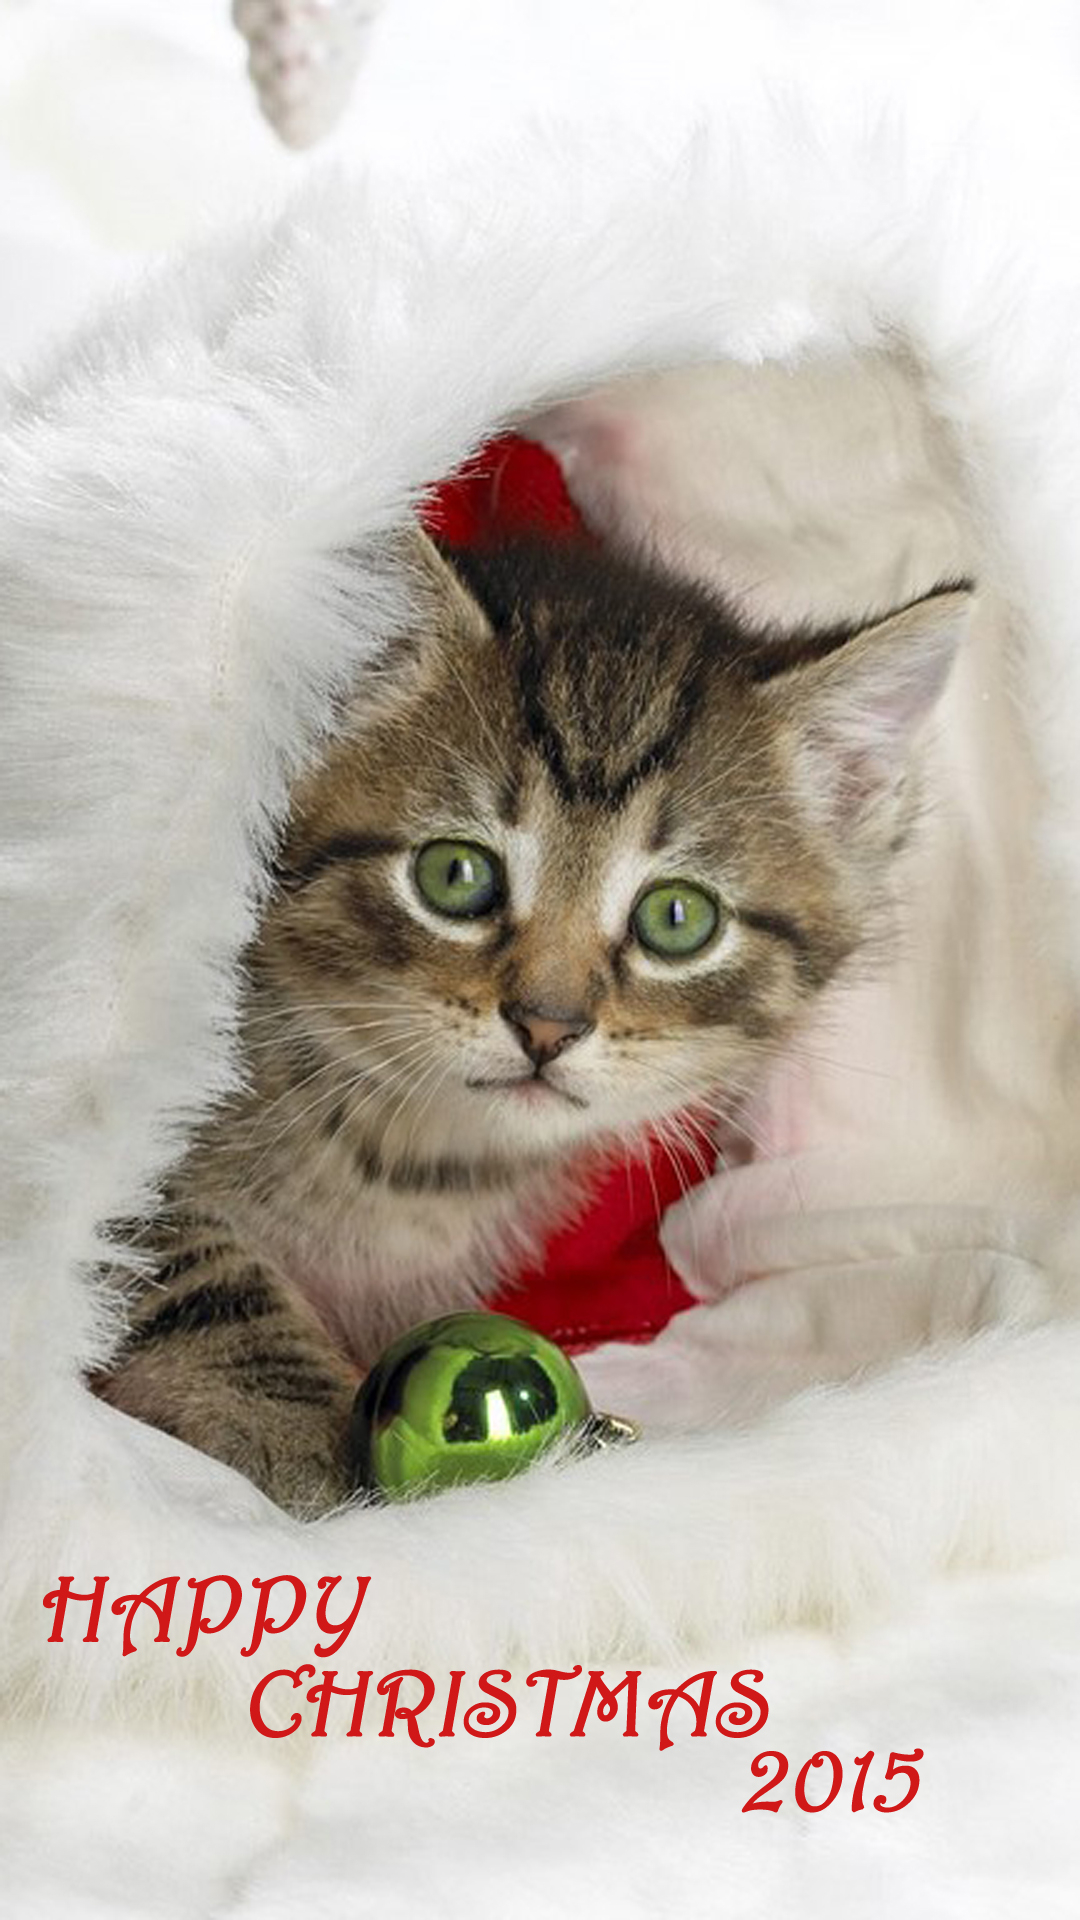 Cute Kitten With Bell